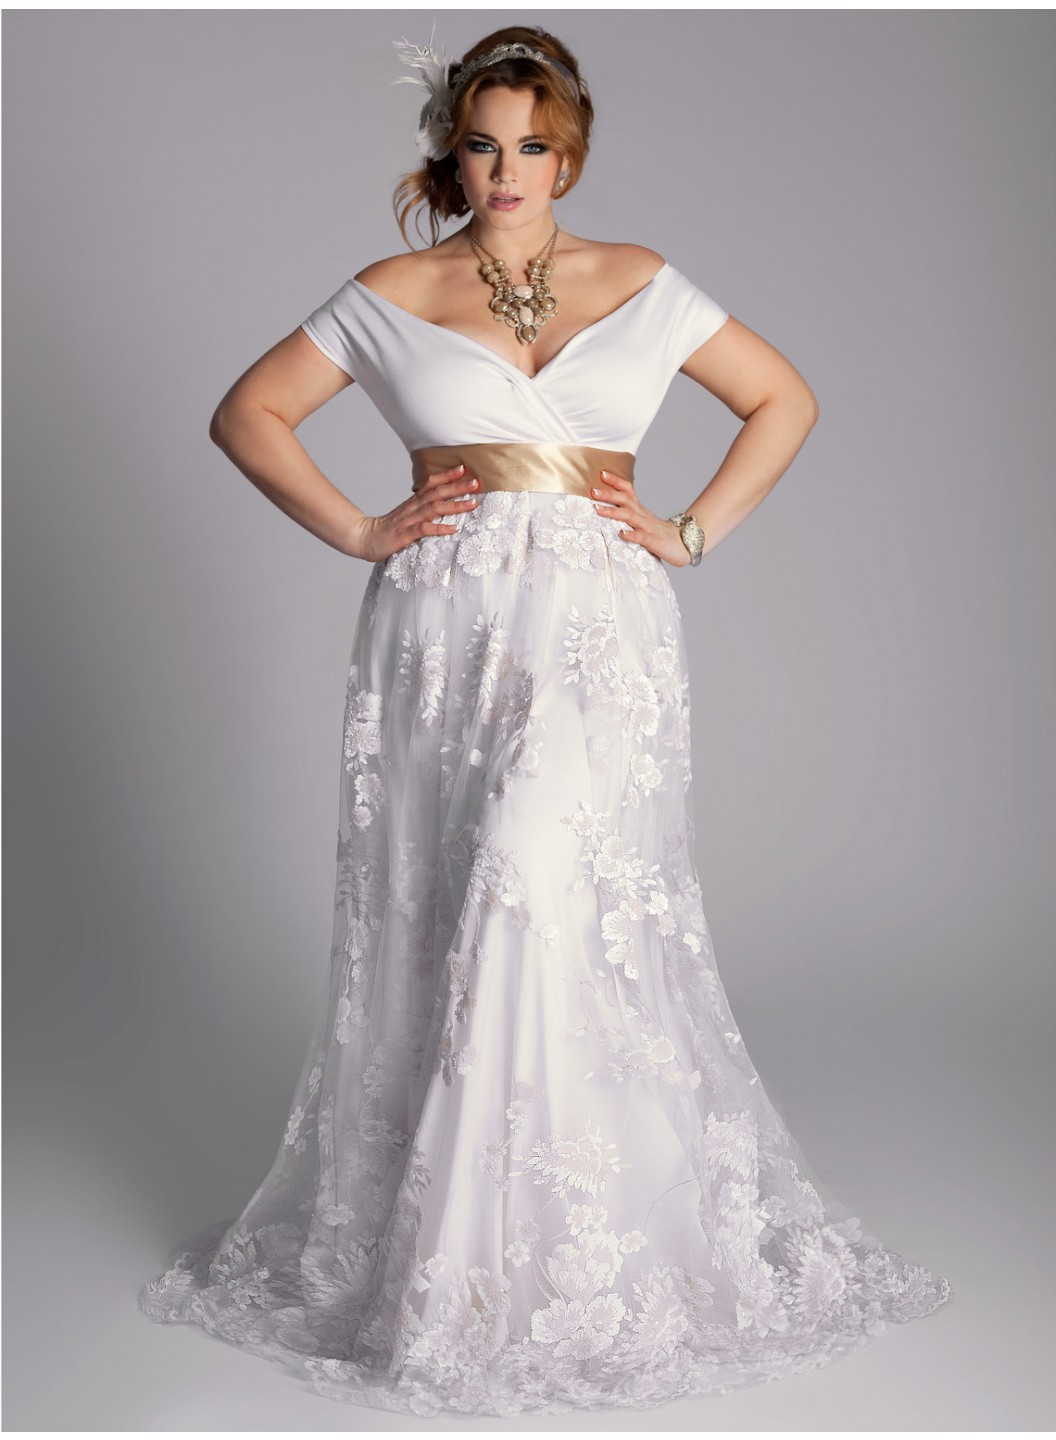 Vintage plus size wedding dress hair comes the bride for Sexy plus size wedding dresses